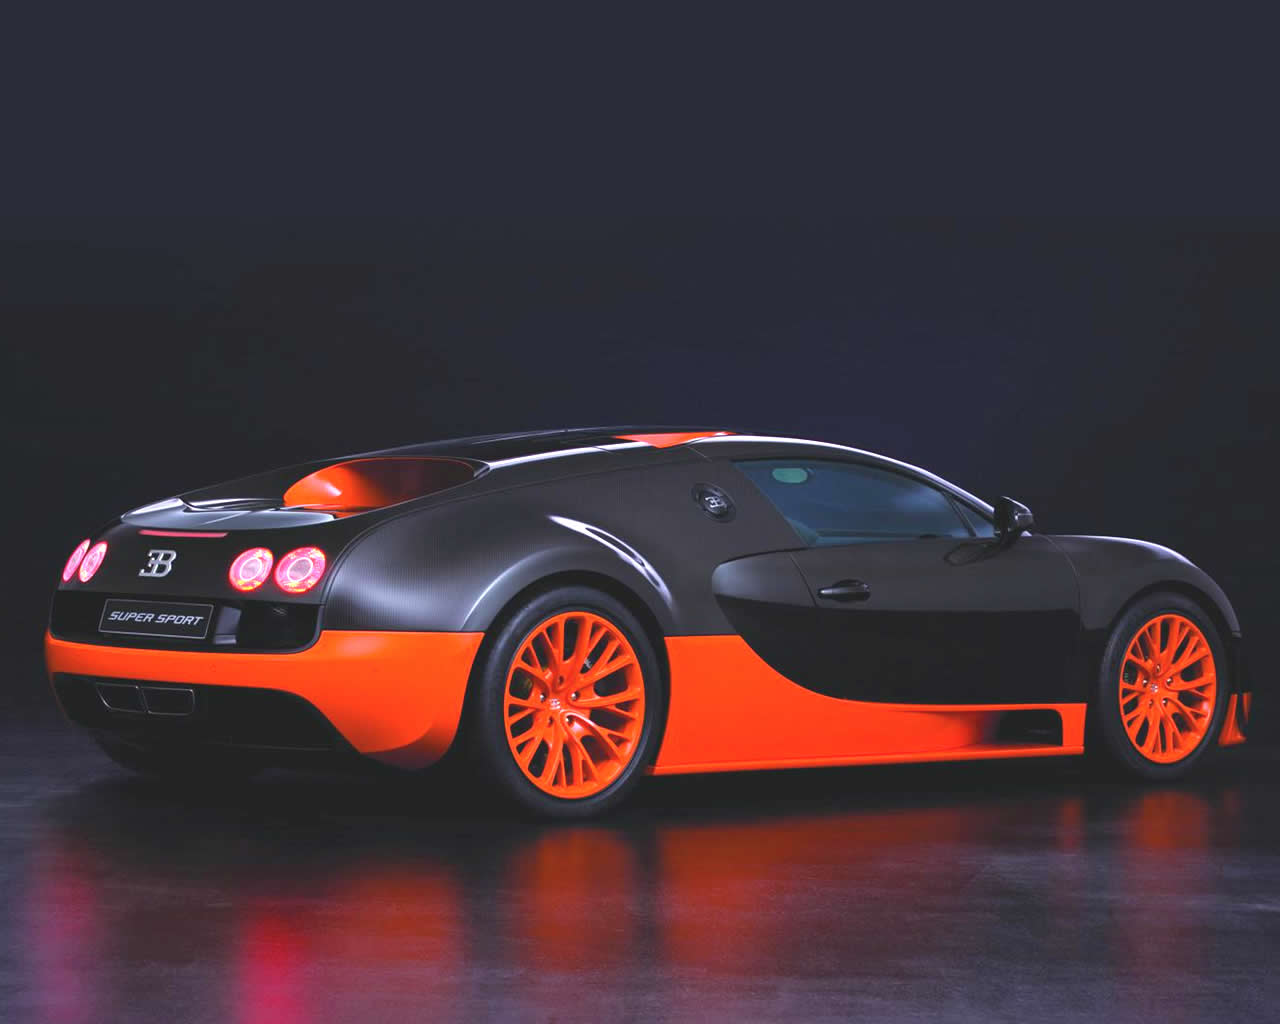 car au bugatti veyron 2011 motor 16 4 used and new cars from australia car. Black Bedroom Furniture Sets. Home Design Ideas